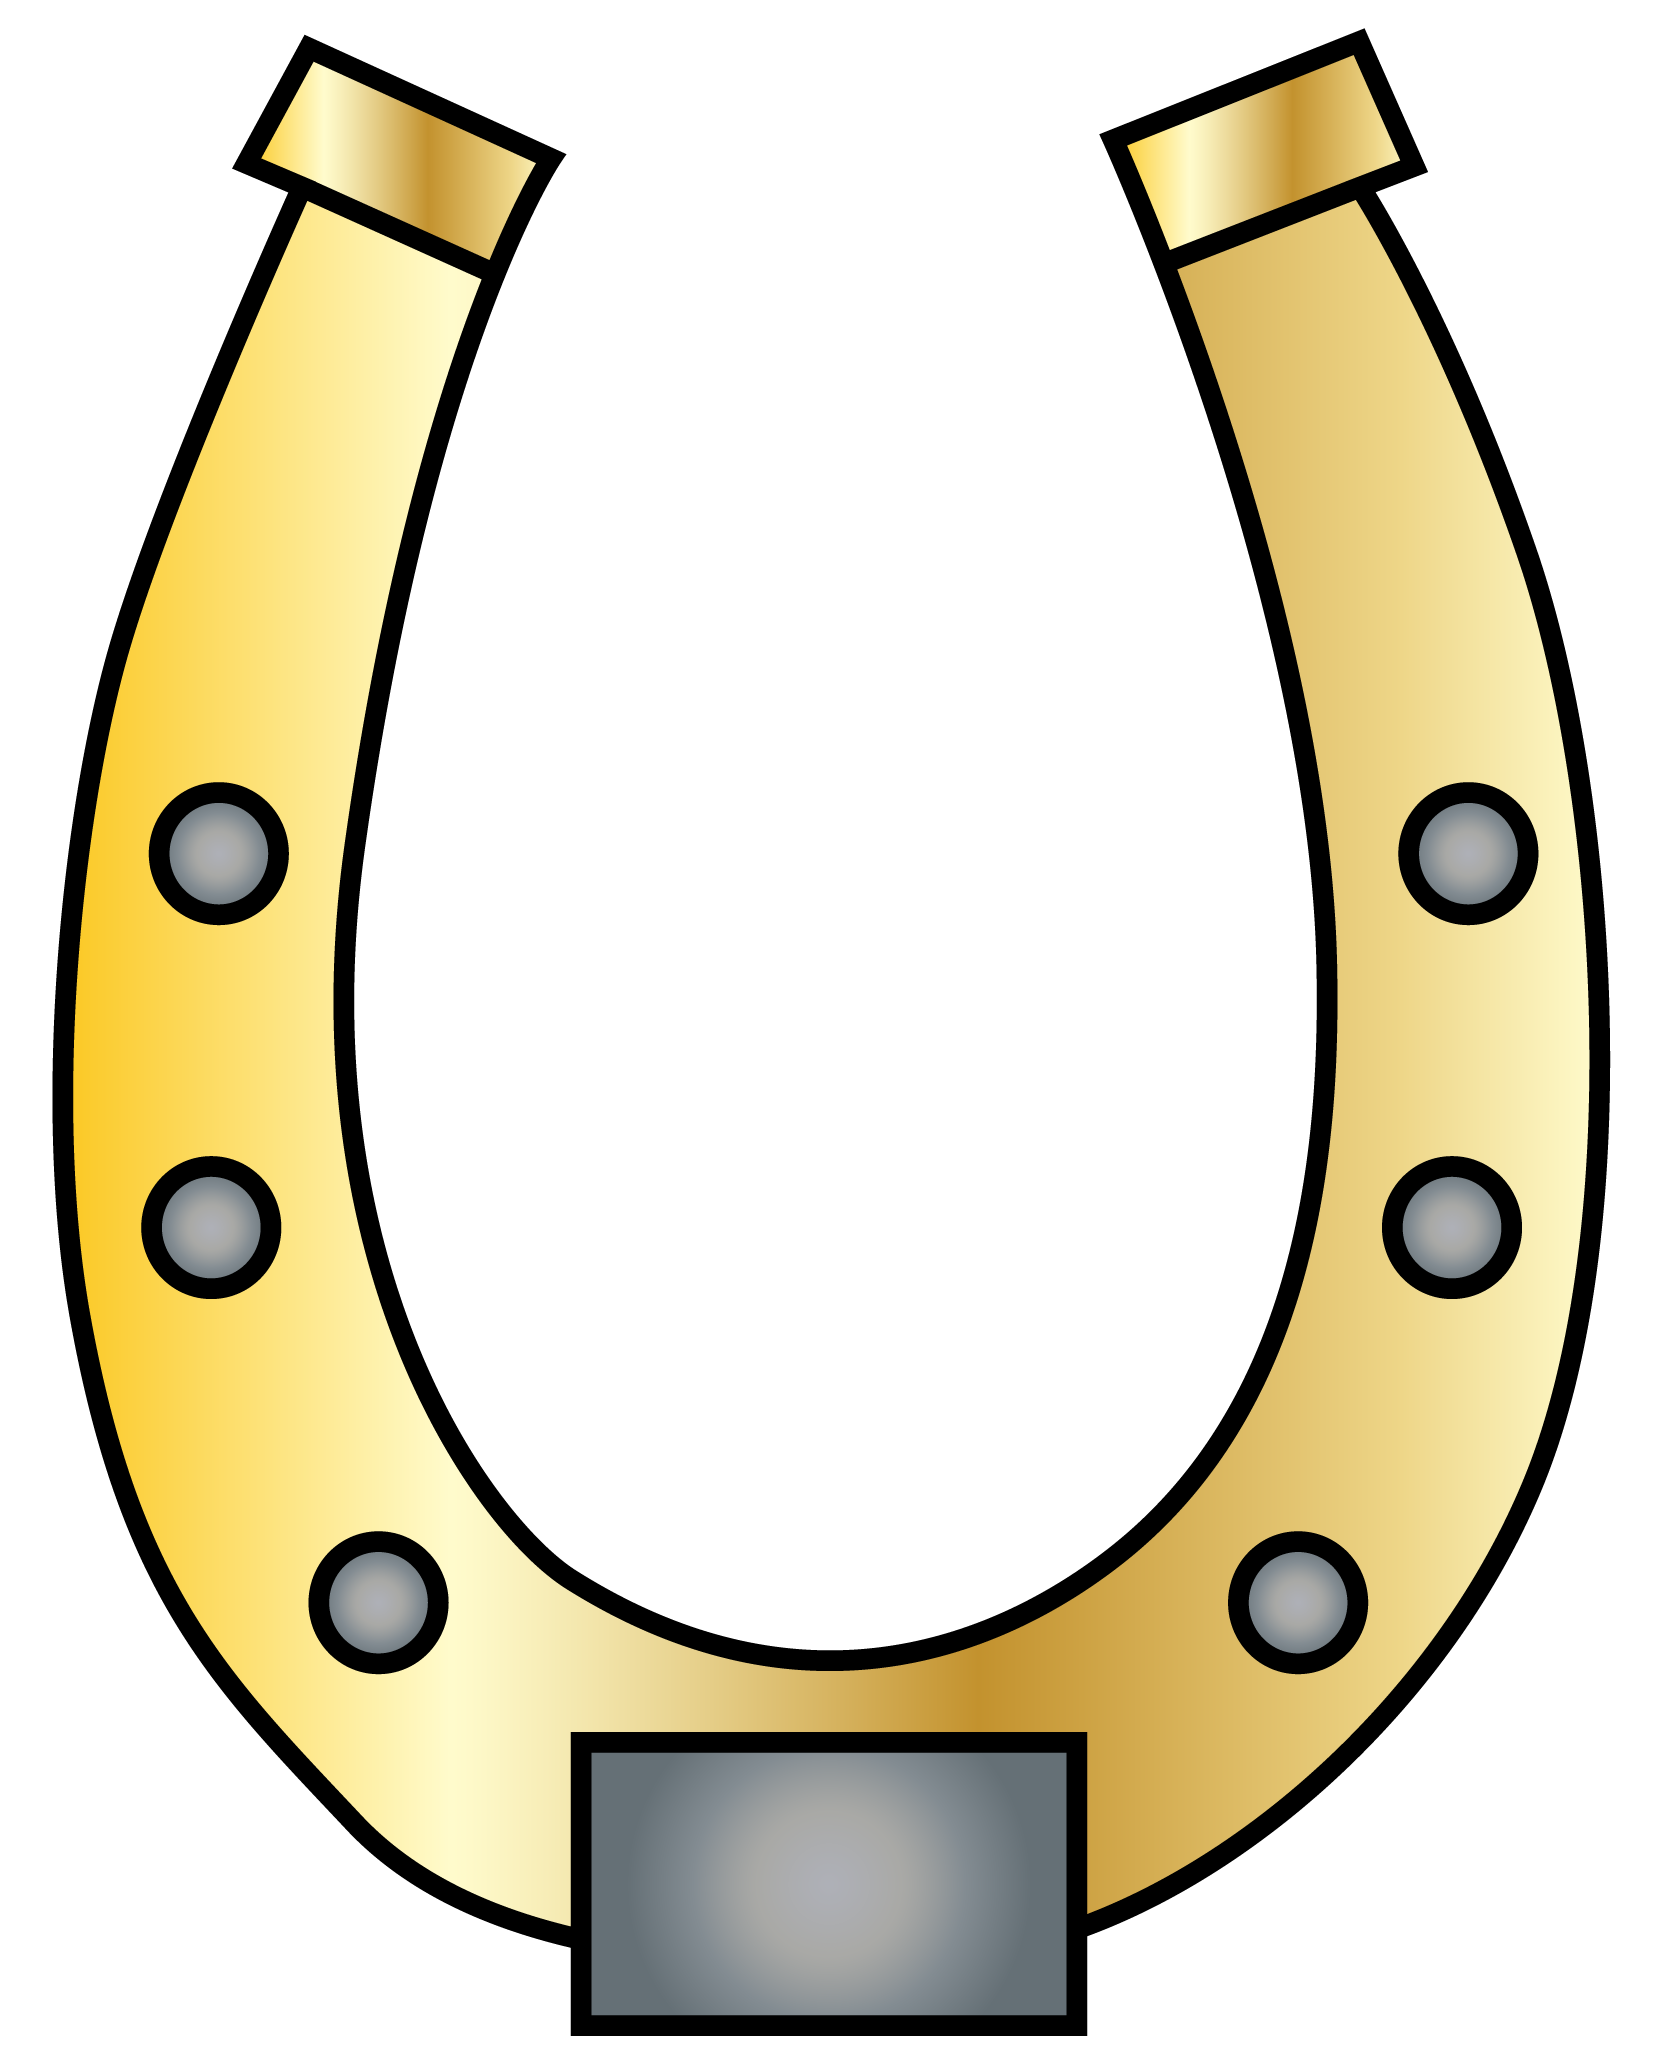 Free horseshoe clipart royalty free stock Free Horseshoe Cliparts, Download Free Clip Art, Free Clip Art on ... royalty free stock